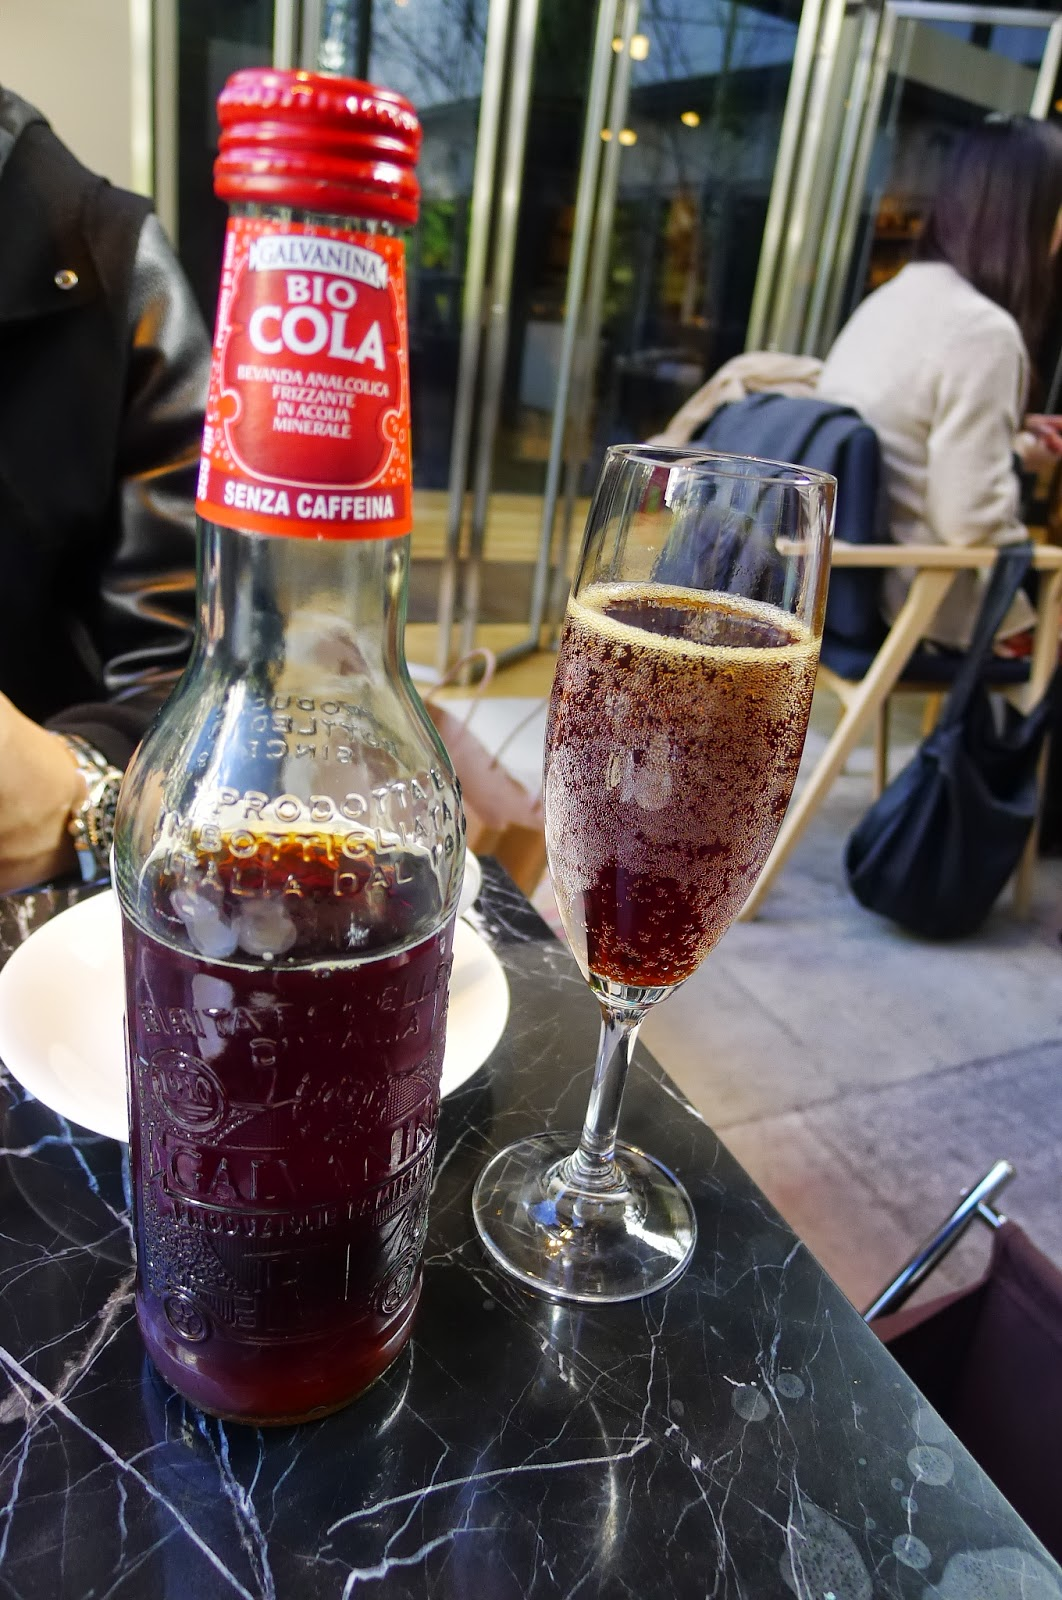 Organic coke in the Italian restaurant - I never knew Organic Coca cola existed!